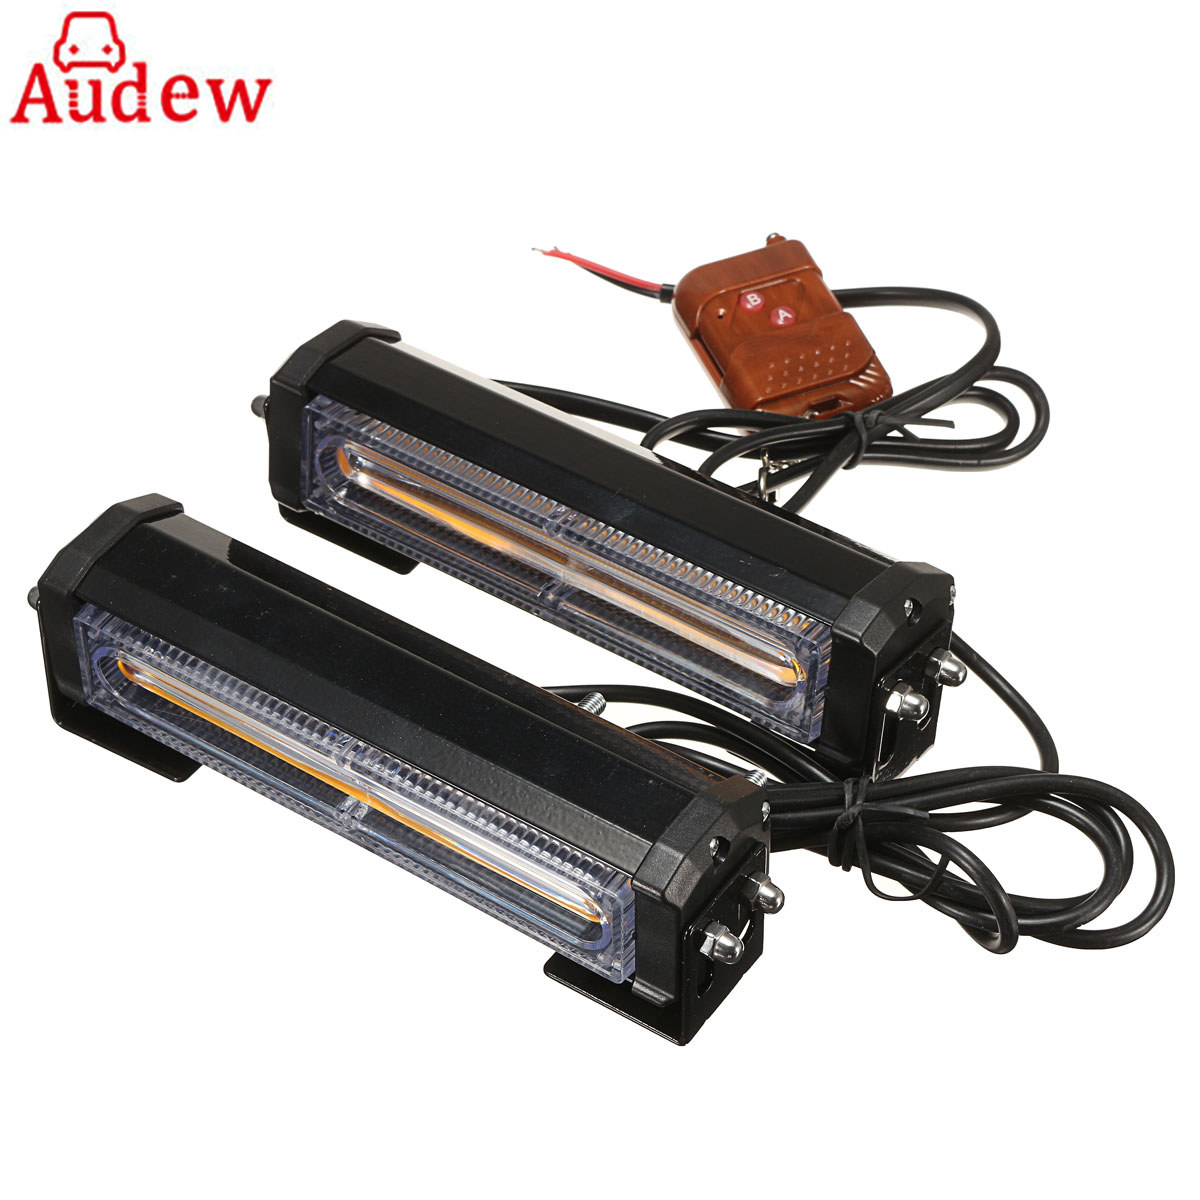 2Pcs Amber COB Car Vehicle LED Emergency Warning Lamp Security Flashing Strobe Light Bars w/ Remote Control 12V/24V bright amber 24 led strobe light warning emergency flashing car truck construction car vehicle safety 7 flash modes 12v